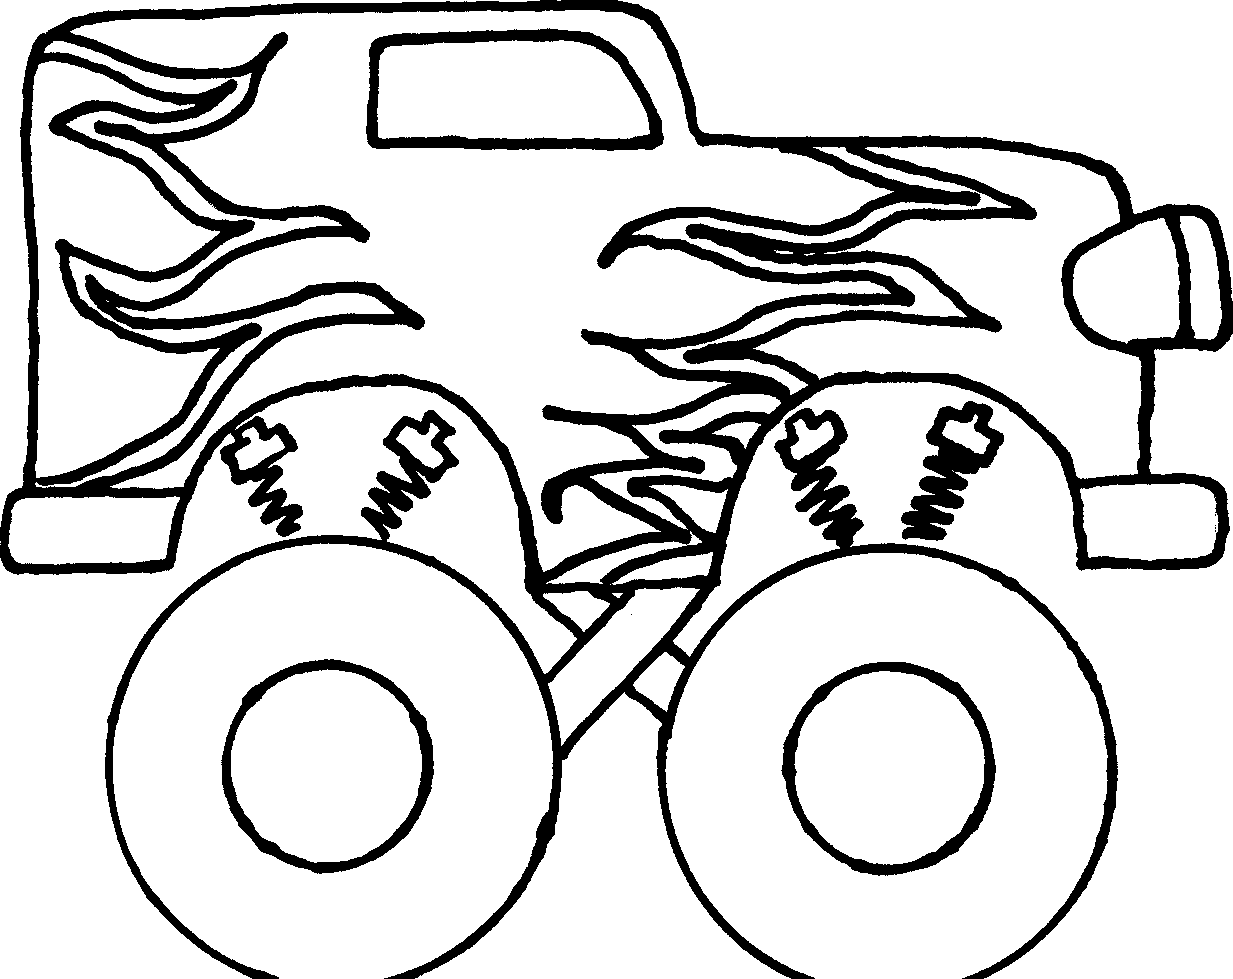 1233x979 Truck Black And White Fire Truck Clipart Black And White Free 4 2